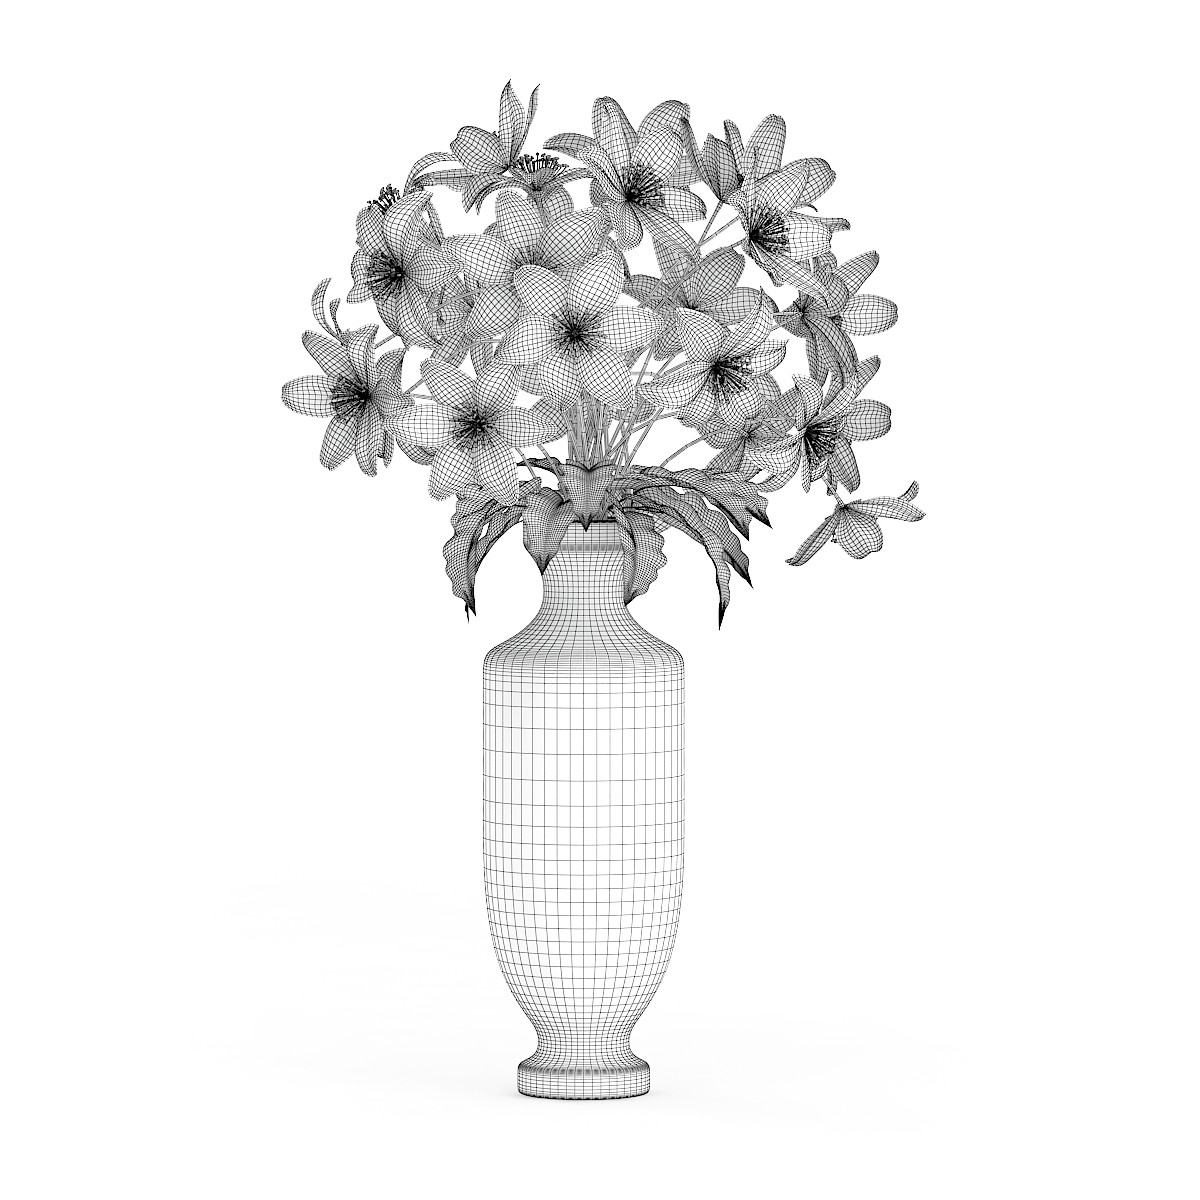 13 Recommended Tall Skinny Vases 2021 free download tall skinny vases of white flowers for tall vases flowers healthy within white flowers in tall vase 3docean item cgaxis models 63 25a grid jpg white flowers in tall vase by cgaxis 3docean